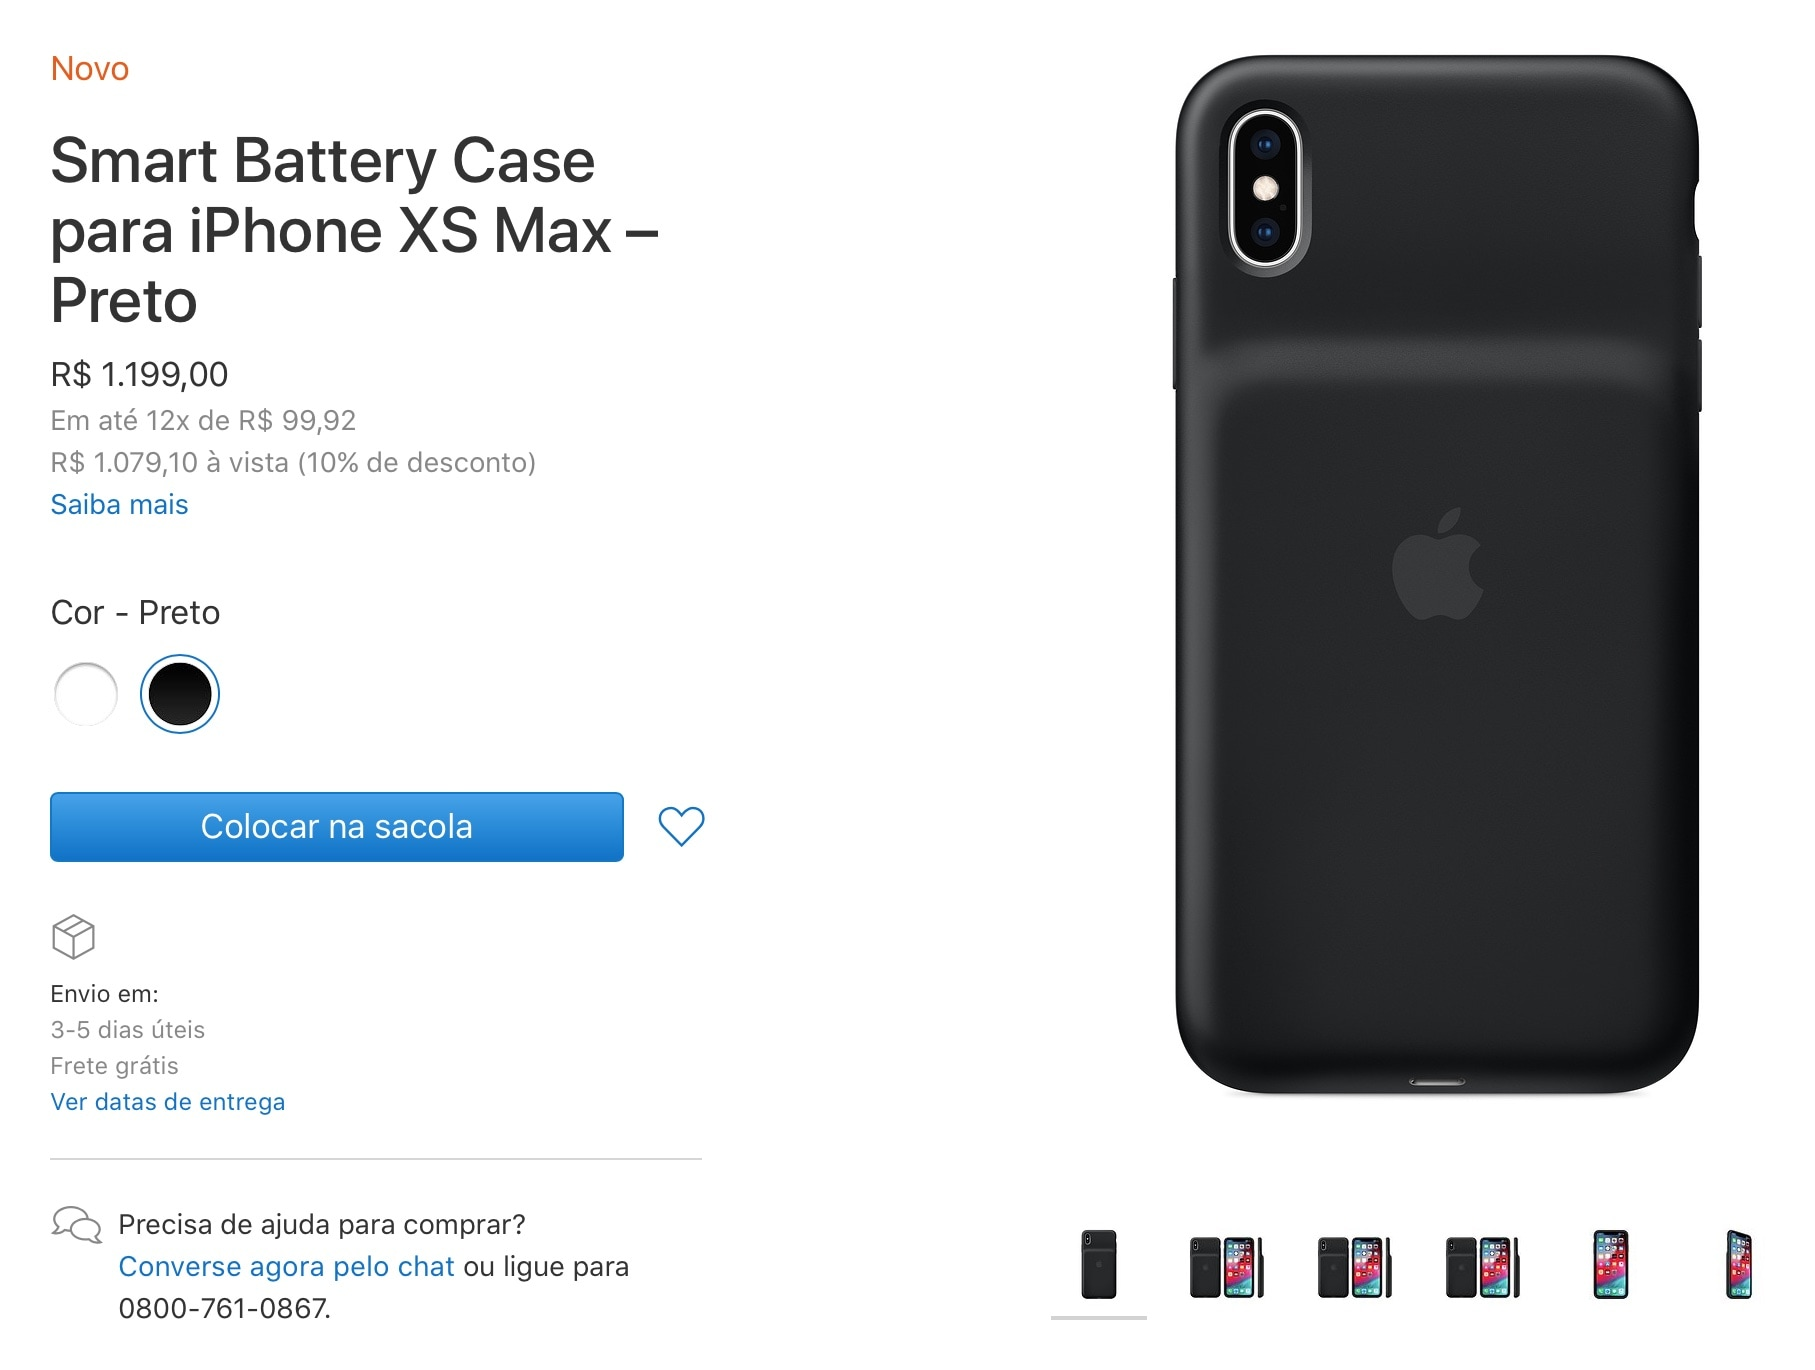 Smart Battery Case do iPhone XS Max disponível na Apple Online Store